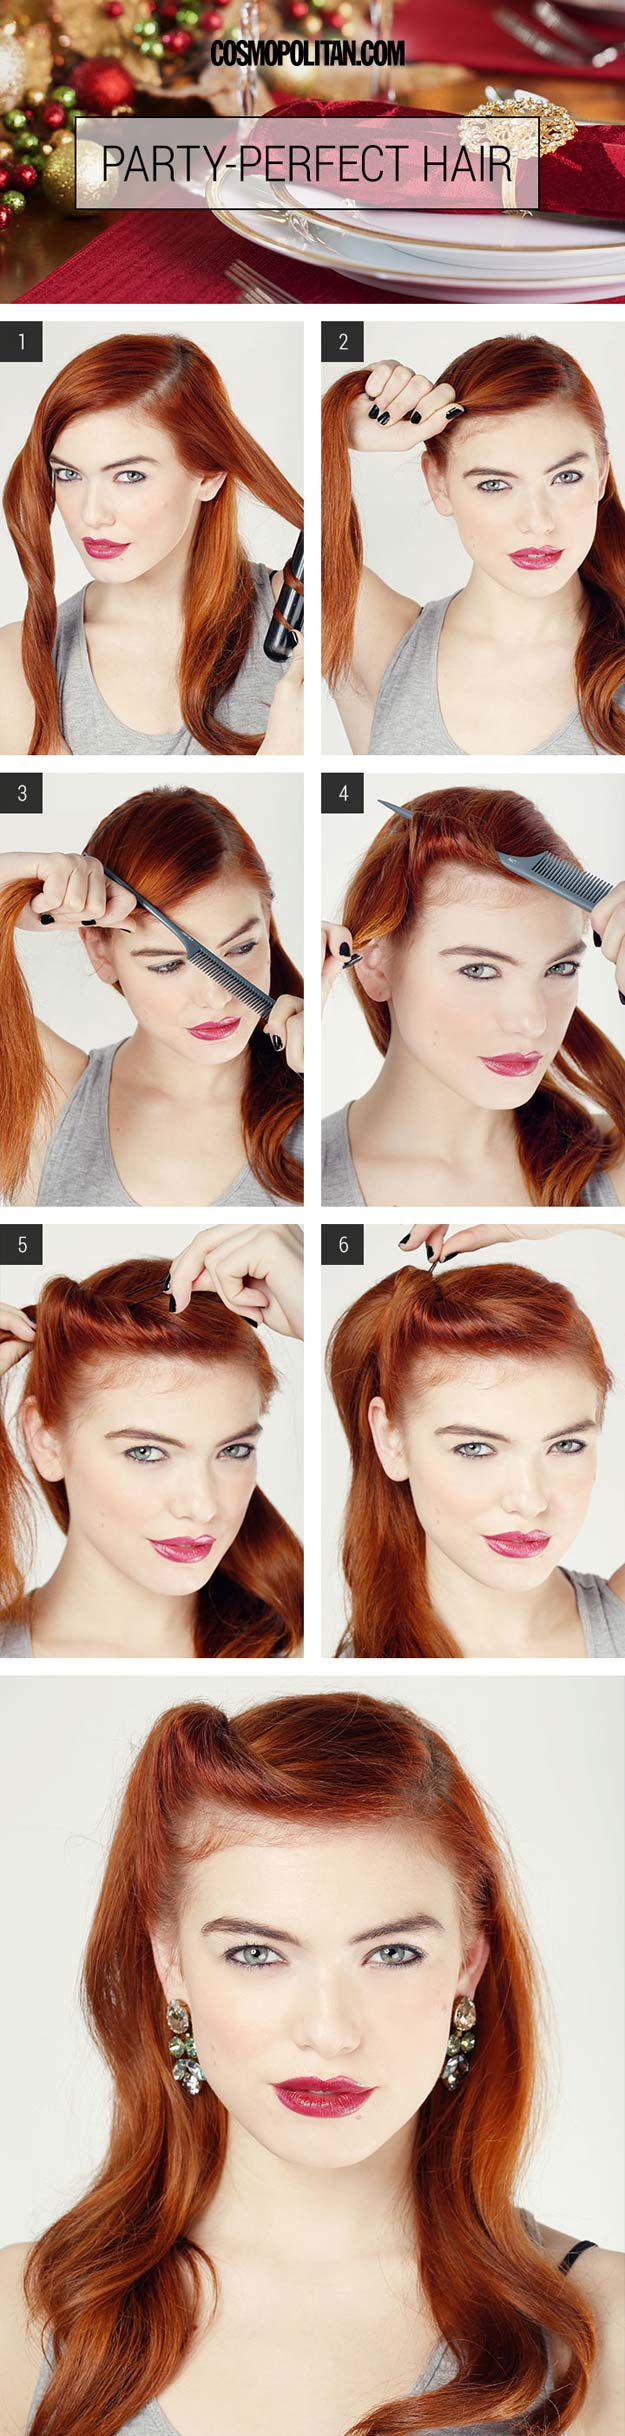 Cool and Easy DIY Hairstyles - Party-Perfect Glam Roll - Quick and Easy Ideas for Back to School Styles for Medium, Short and Long Hair - Fun Tips and Best Step by Step Tutorials for Teens, Prom, Weddings, Special Occasions and Work. Up dos, Braids, Top Knots and Buns, Super Summer Looks http://diyprojectsforteens.com/diy-cool-easy-hairstyles